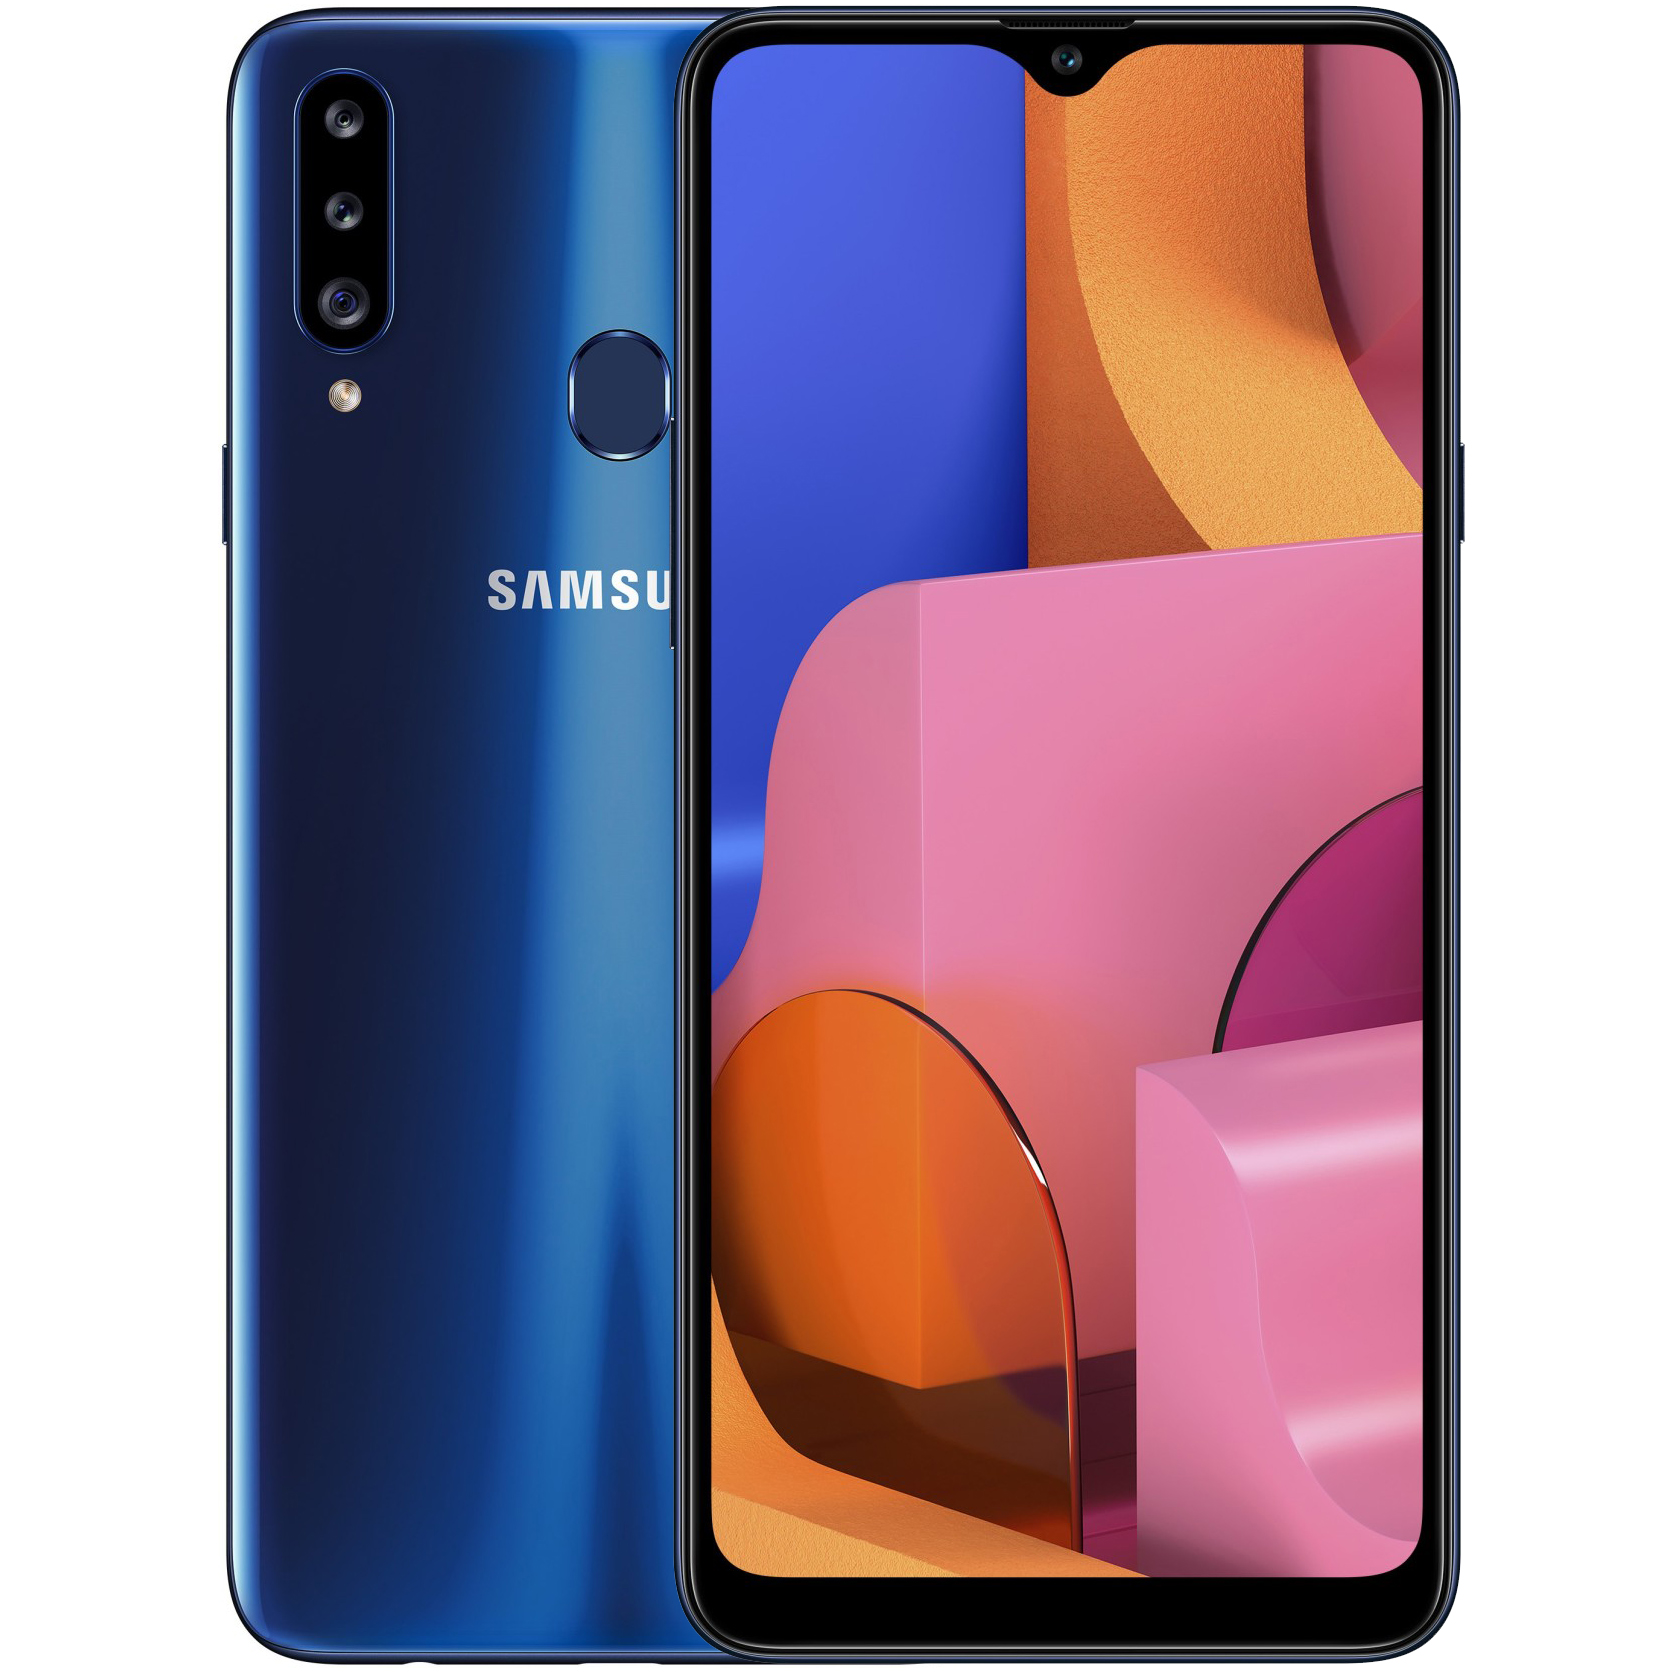 MOBILE PHONE SAMSUNG 6.5 OCTA CORE 1.6GHZ 3GB 32GB DUAL SIM GALAXY A20S - BLUE ,Android Smartphone